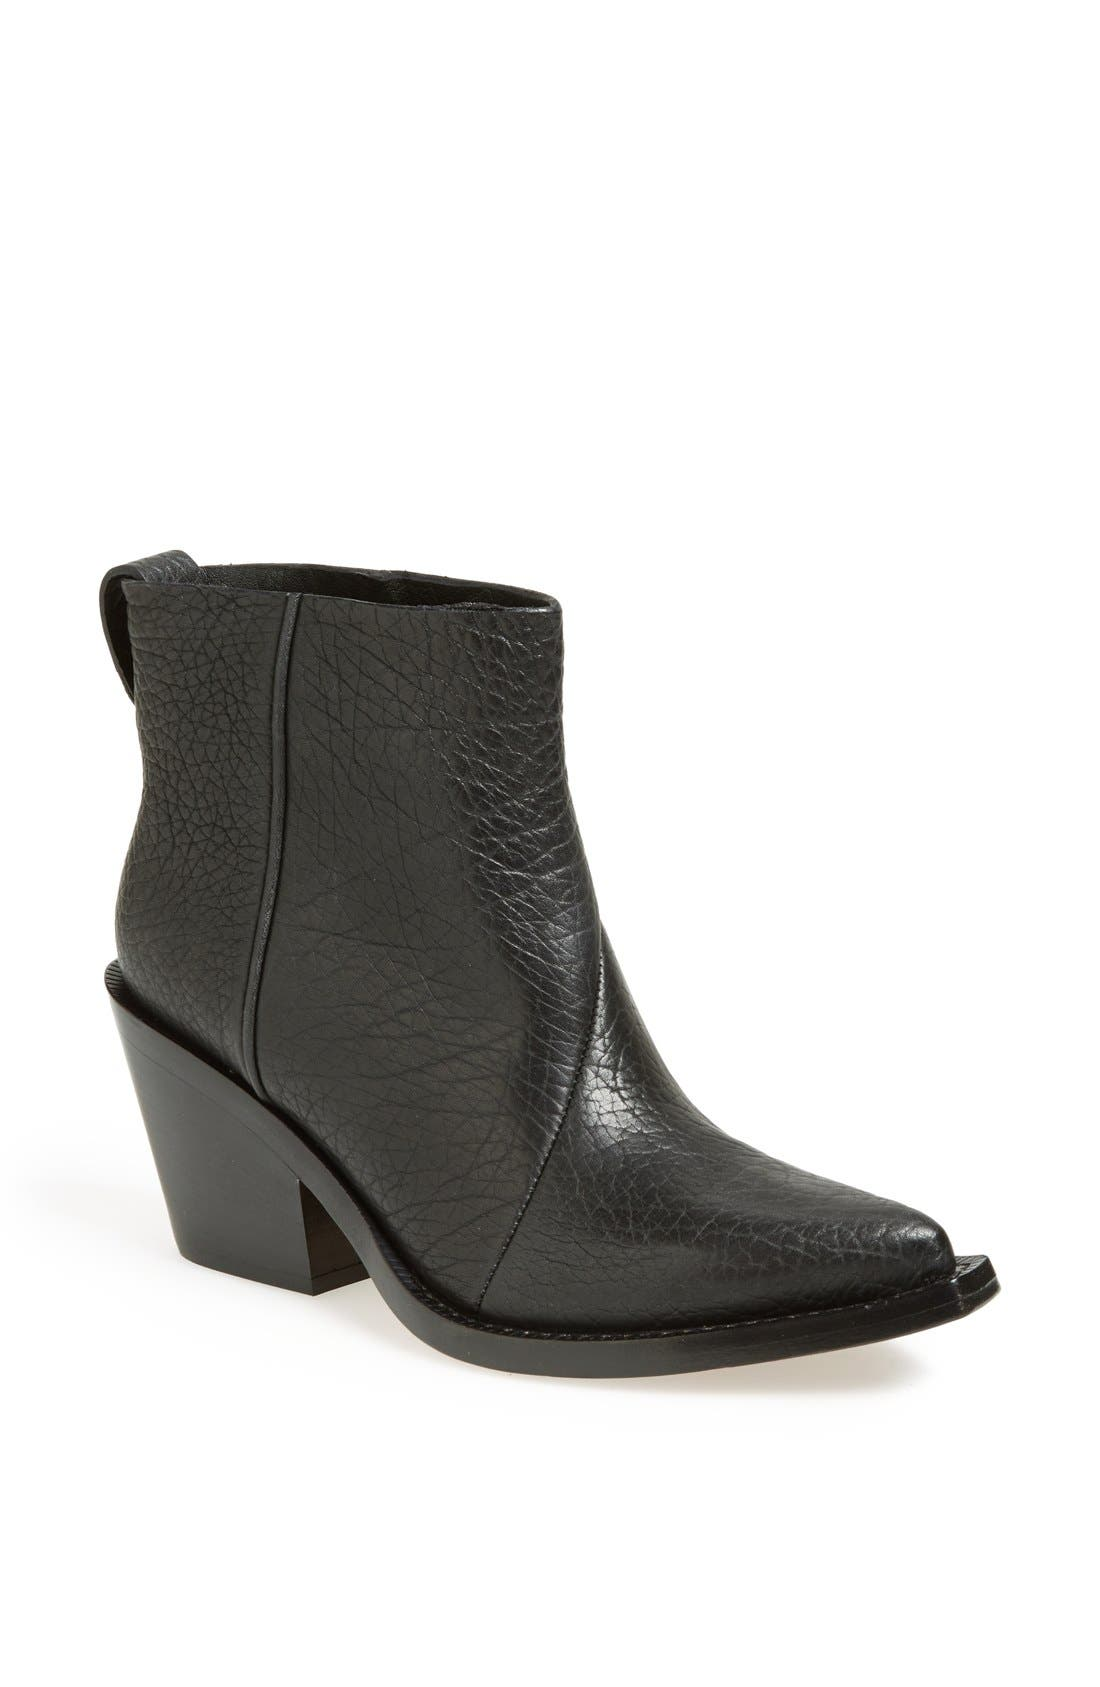 Alternate Image 1 Selected - Acne Studios 'Donna' Bootie